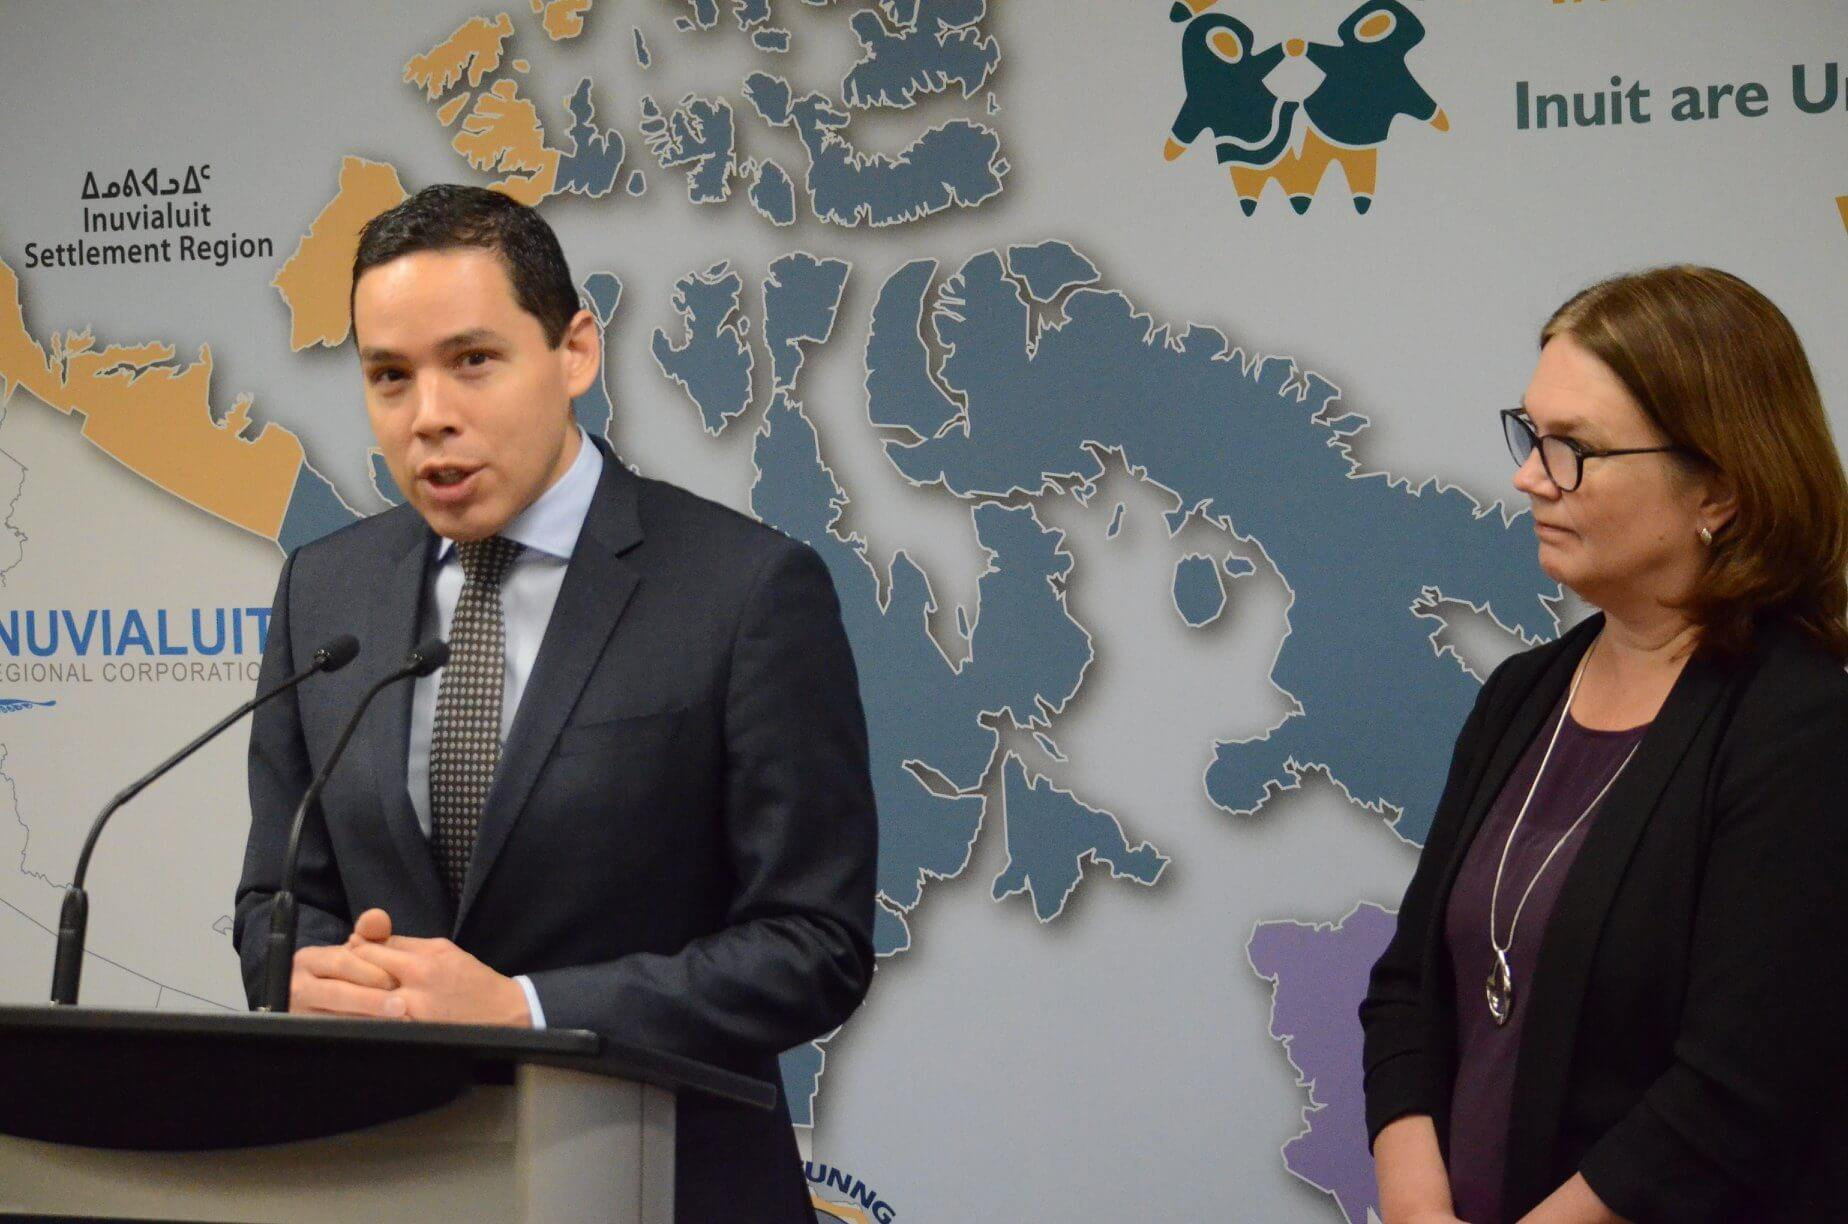 The Government of Canada and Inuit Tapiriit Kanatami commit to eliminating tuberculosis across Inuit Nunangat by 2030